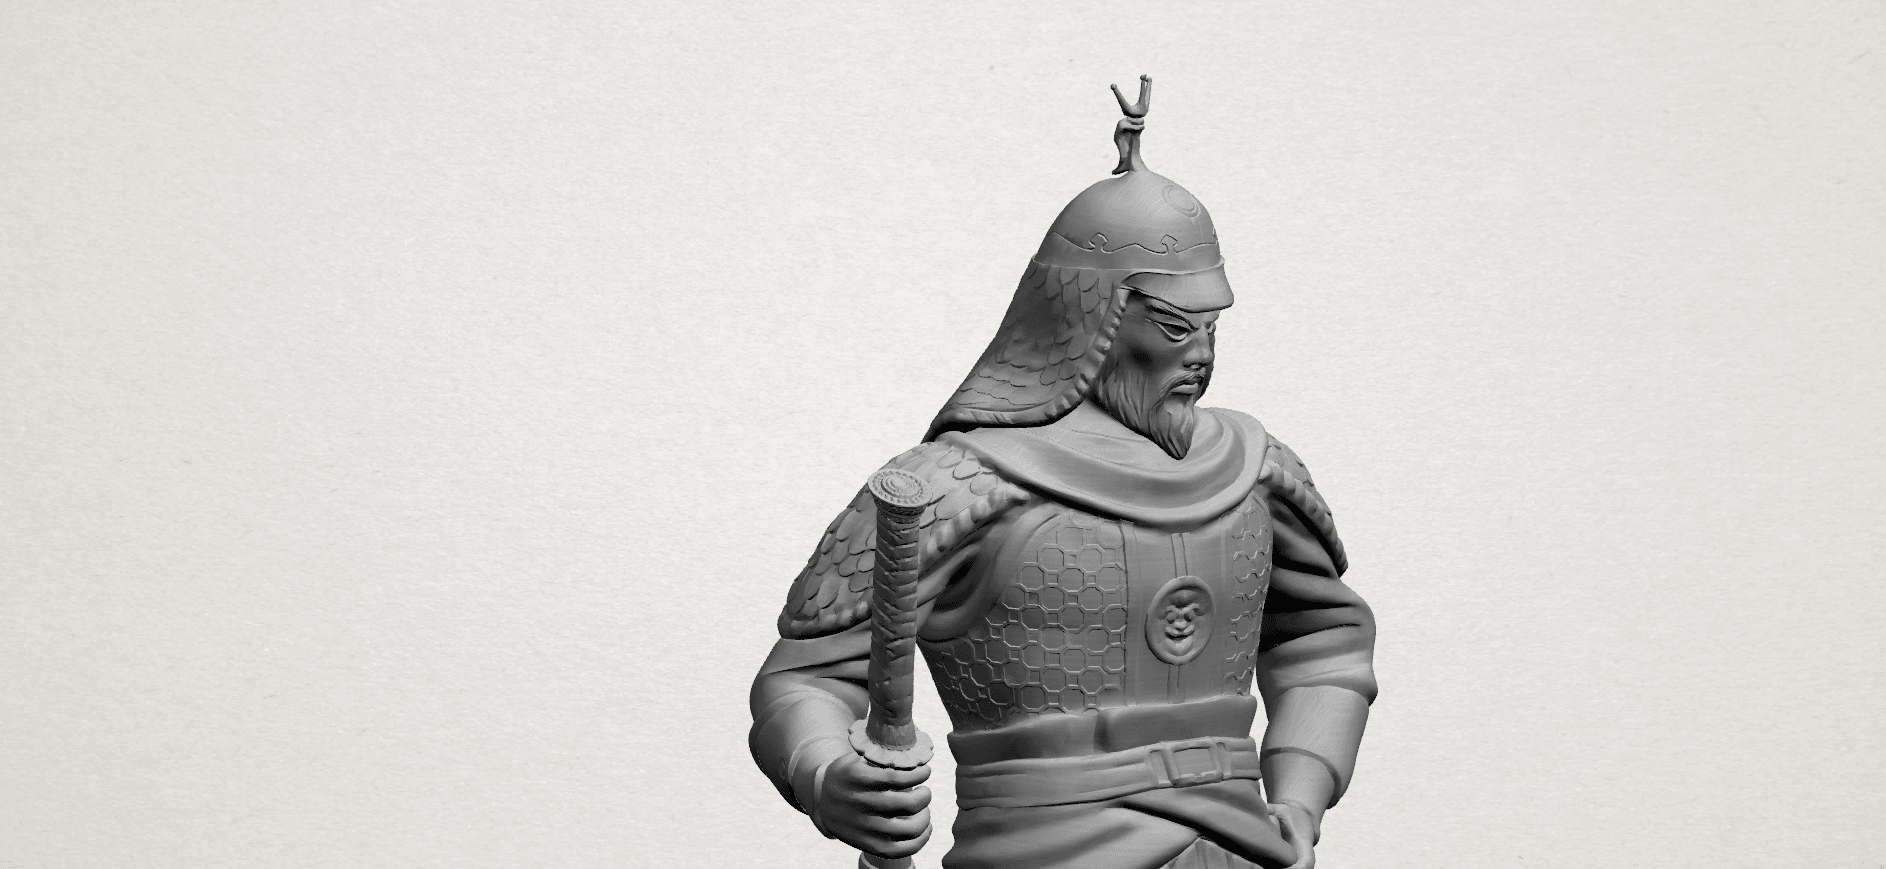 Age of Empire - warrior -A14.png Download free STL file Age of Empire - warrio • 3D print design, GeorgesNikkei